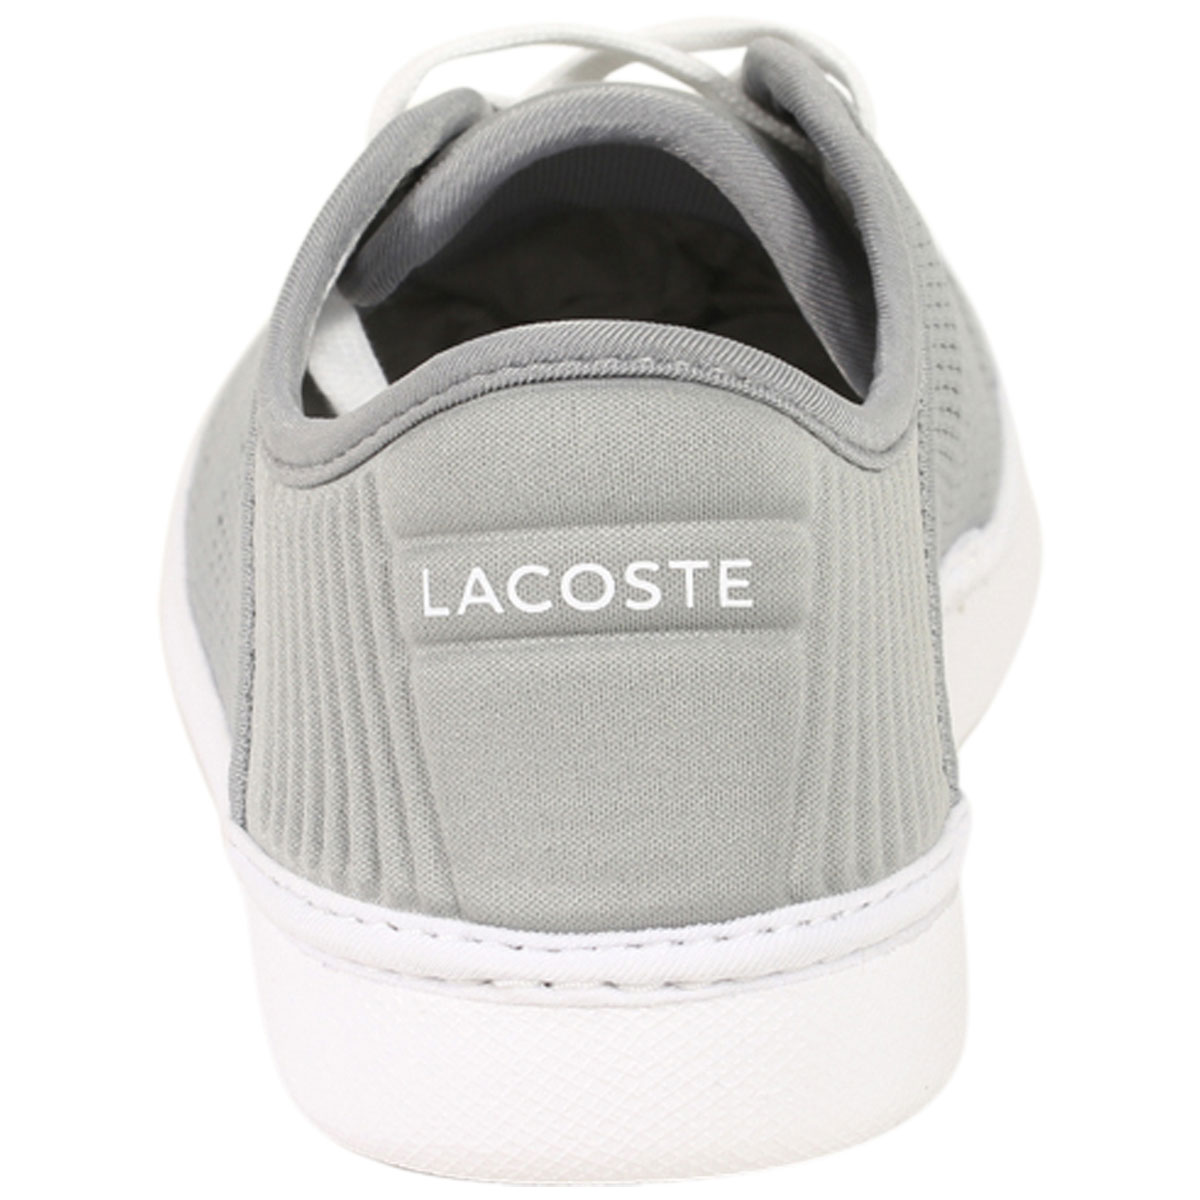 Lacoste-Men-039-s-L-Ydro-Lace-118-Trainers-Sneakers-Shoes thumbnail 17